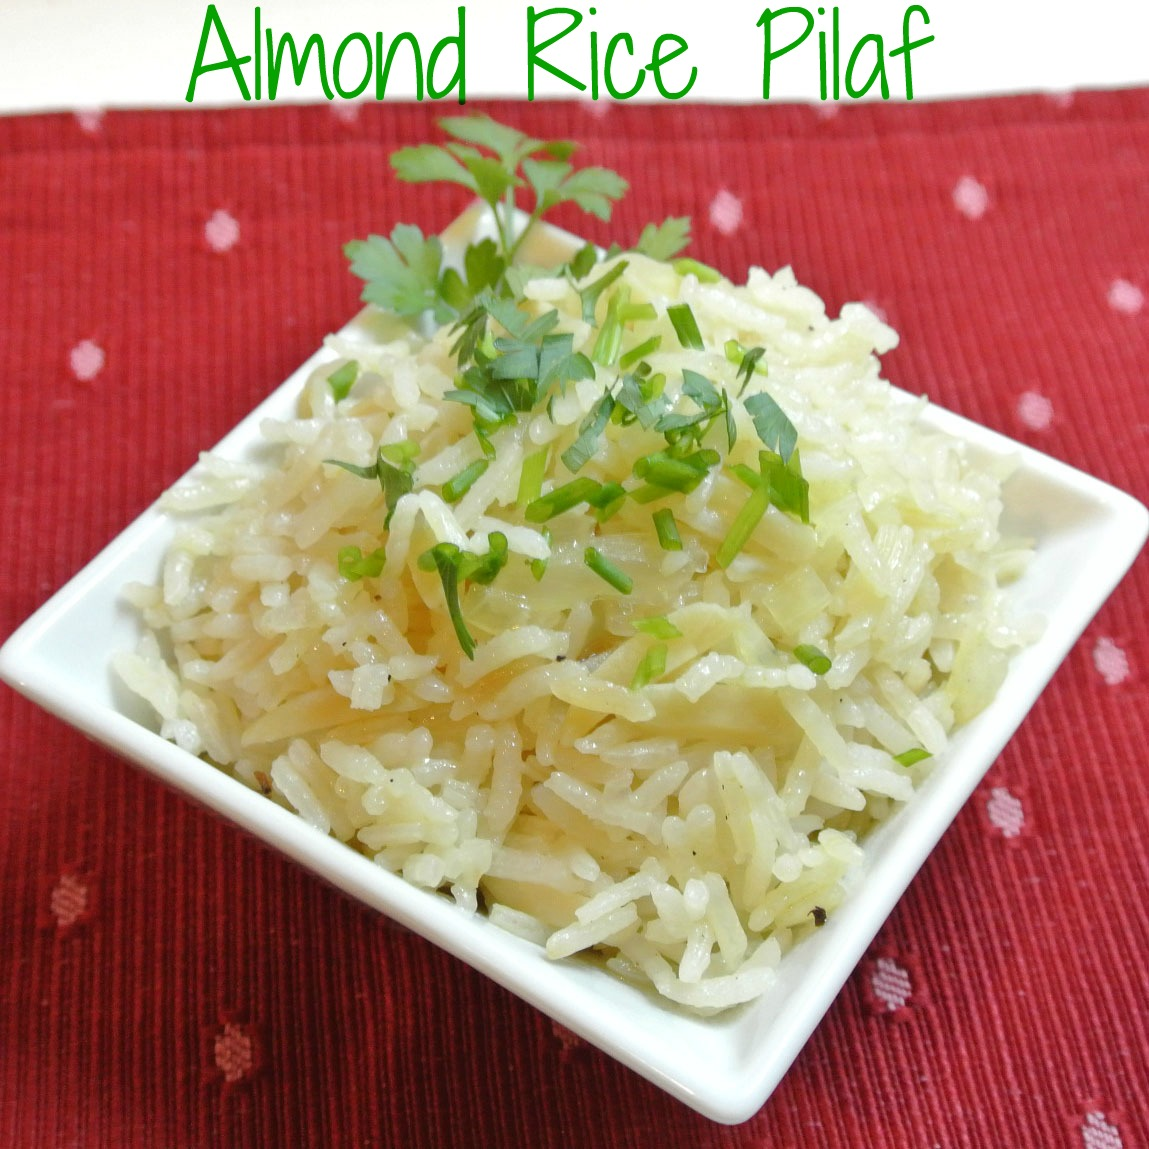 ... and pomegranates saffron and orange rice pilaf with orzo and pine nuts